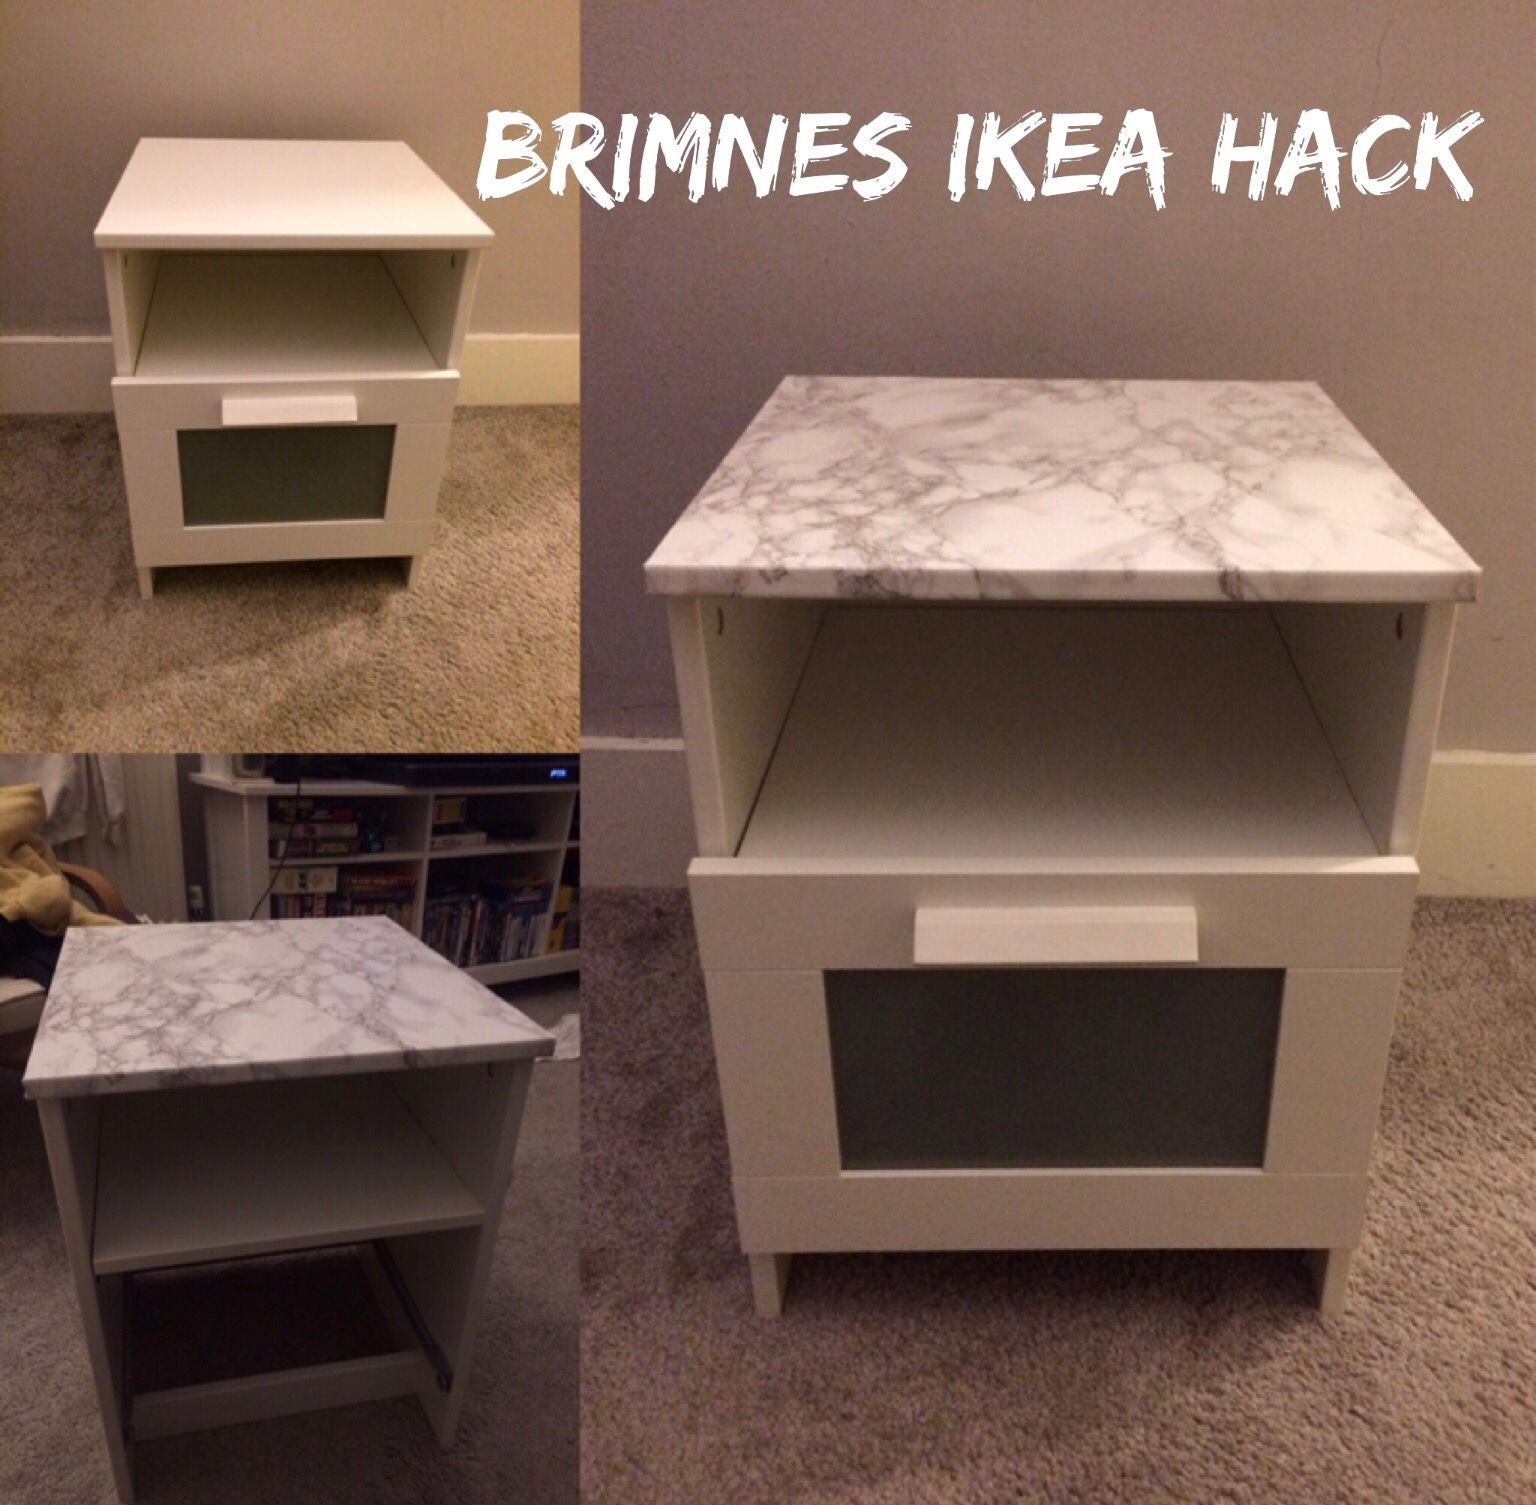 5 Brimnes ikea hack Super easy upcycle using sticky back plastic